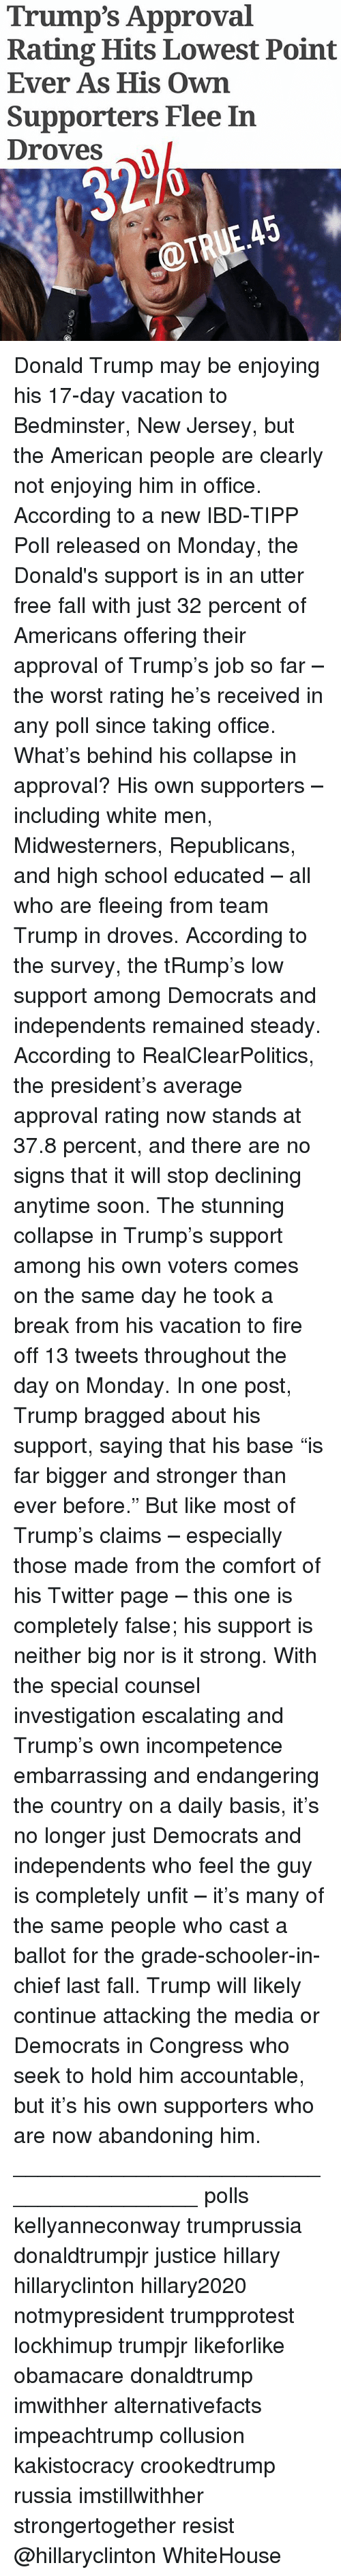 """Donald Trump, Fall, and Fire: Trump's Approval  Rating Hits Lowest Point  Ever As His OWn  Supporters Flee In  Droves  45 Donald Trump may be enjoying his 17-day vacation to Bedminster, New Jersey, but the American people are clearly not enjoying him in office. According to a new IBD-TIPP Poll released on Monday, the Donald's support is in an utter free fall with just 32 percent of Americans offering their approval of Trump's job so far – the worst rating he's received in any poll since taking office. What's behind his collapse in approval? His own supporters – including white men, Midwesterners, Republicans, and high school educated – all who are fleeing from team Trump in droves. According to the survey, the tRump's low support among Democrats and independents remained steady. According to RealClearPolitics, the president's average approval rating now stands at 37.8 percent, and there are no signs that it will stop declining anytime soon. The stunning collapse in Trump's support among his own voters comes on the same day he took a break from his vacation to fire off 13 tweets throughout the day on Monday. In one post, Trump bragged about his support, saying that his base """"is far bigger and stronger than ever before."""" But like most of Trump's claims – especially those made from the comfort of his Twitter page – this one is completely false; his support is neither big nor is it strong. With the special counsel investigation escalating and Trump's own incompetence embarrassing and endangering the country on a daily basis, it's no longer just Democrats and independents who feel the guy is completely unfit – it's many of the same people who cast a ballot for the grade-schooler-in-chief last fall. Trump will likely continue attacking the media or Democrats in Congress who seek to hold him accountable, but it's his own supporters who are now abandoning him. ________________________________________ polls kellyanneconway trumprussia donaldtrumpjr justice hillary hillarycli"""